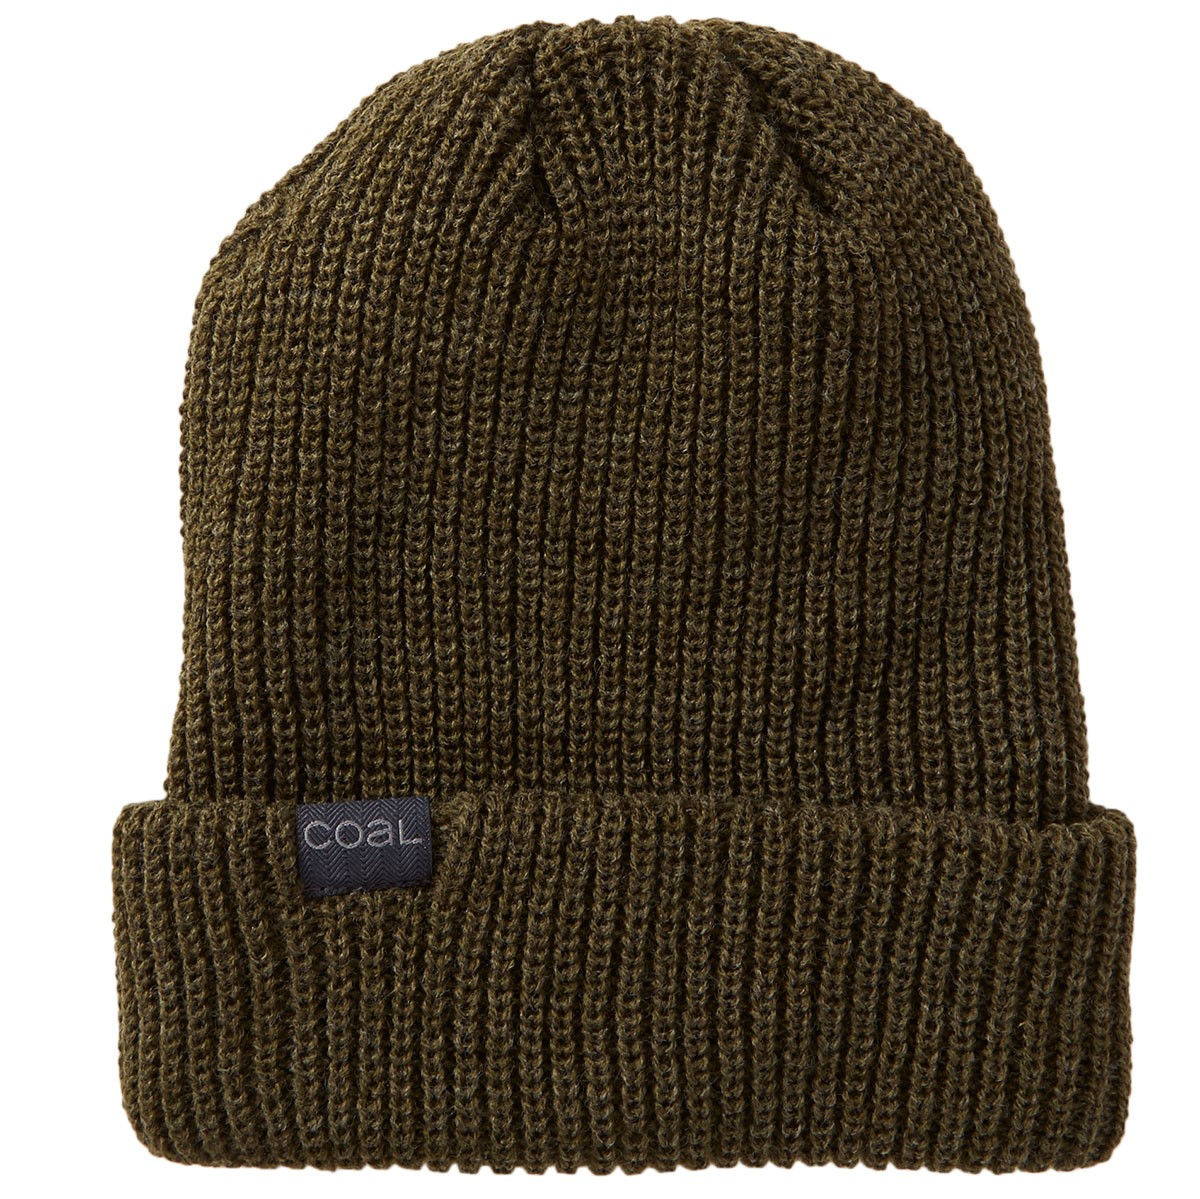 08cc77dfde2 Coal The Stanley Beanie - Heather Olive